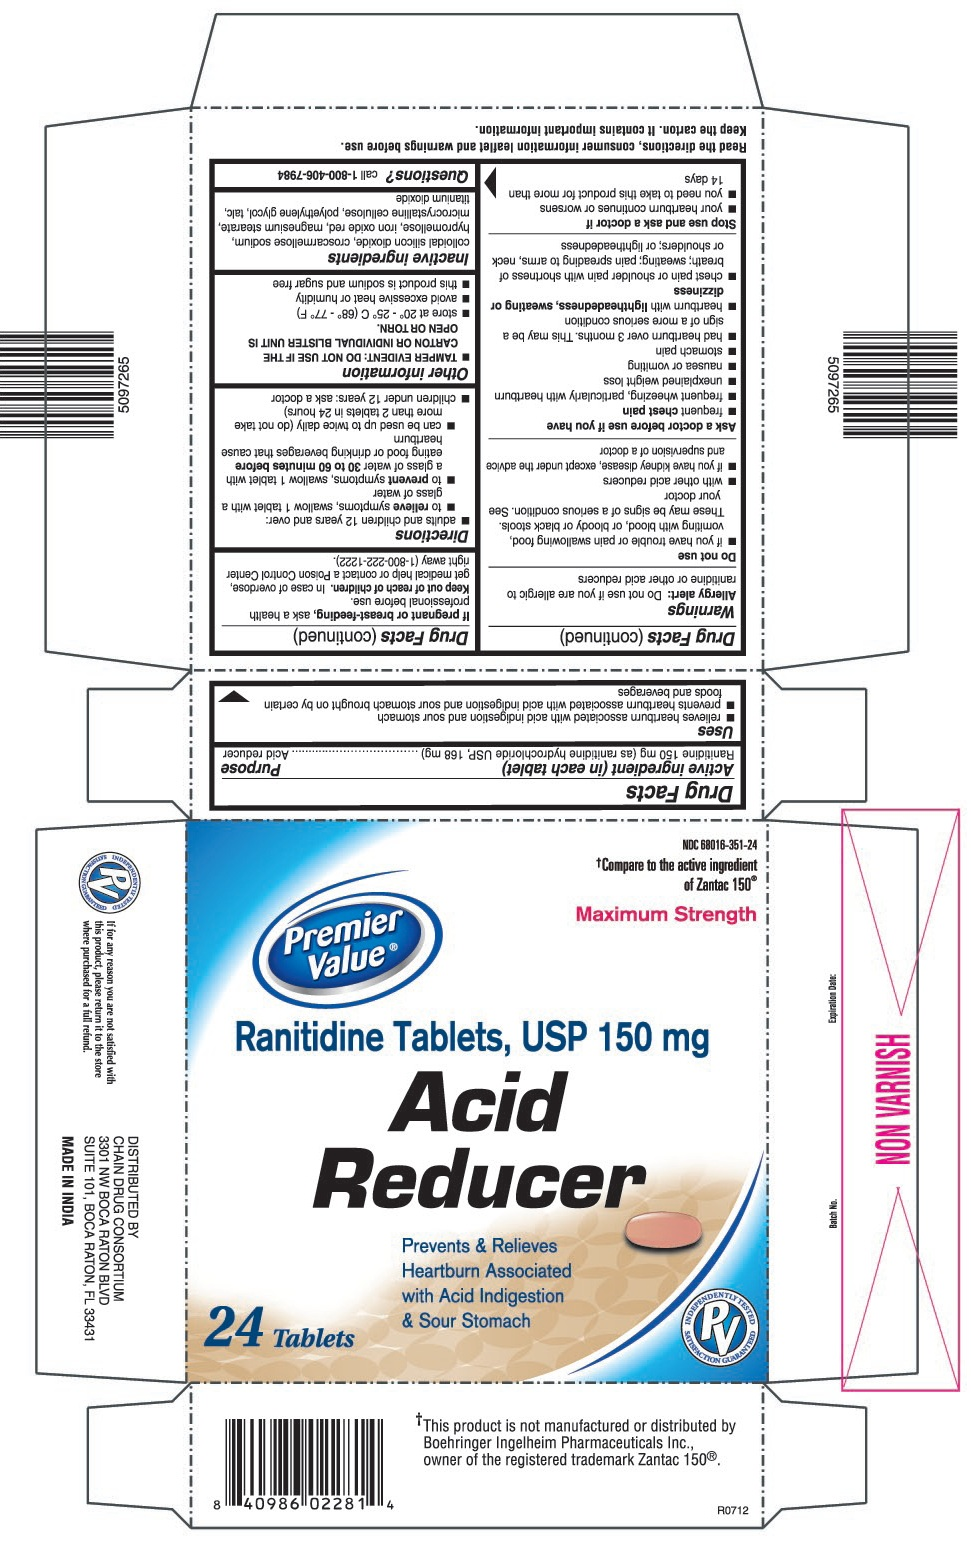 This is the Premier Value 24 count blister carton label for Ranitidine Tablets, USP 150 mg.